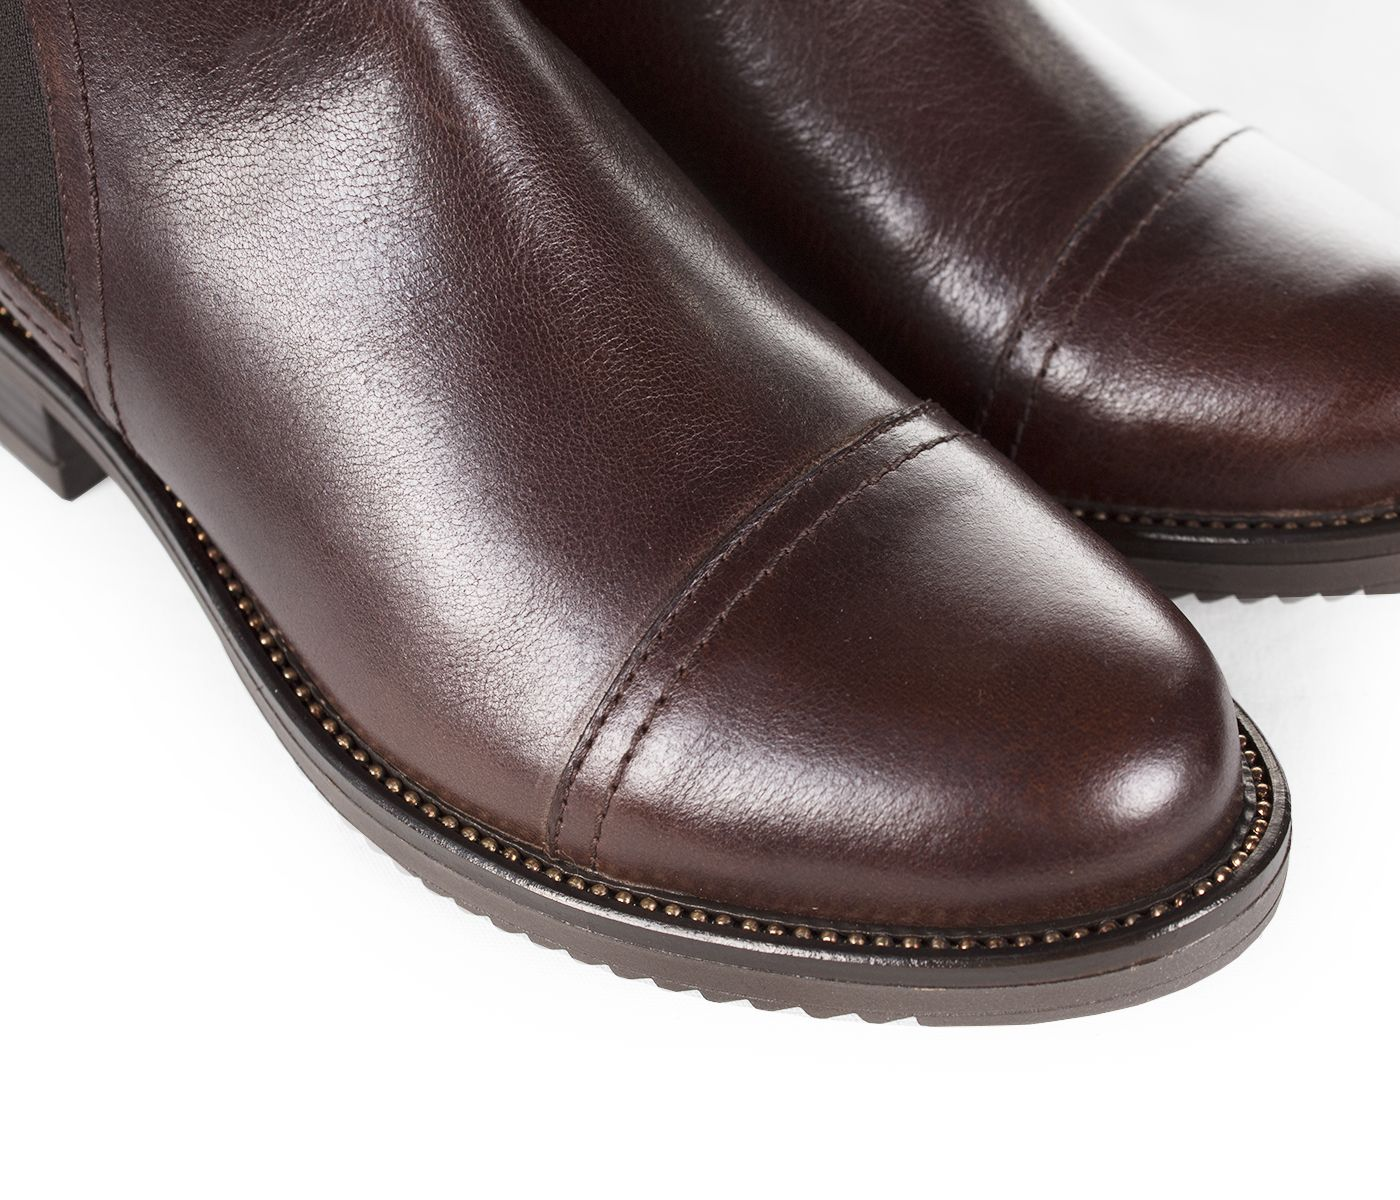 BROWN LEATHER ANKLE BOOTS 3